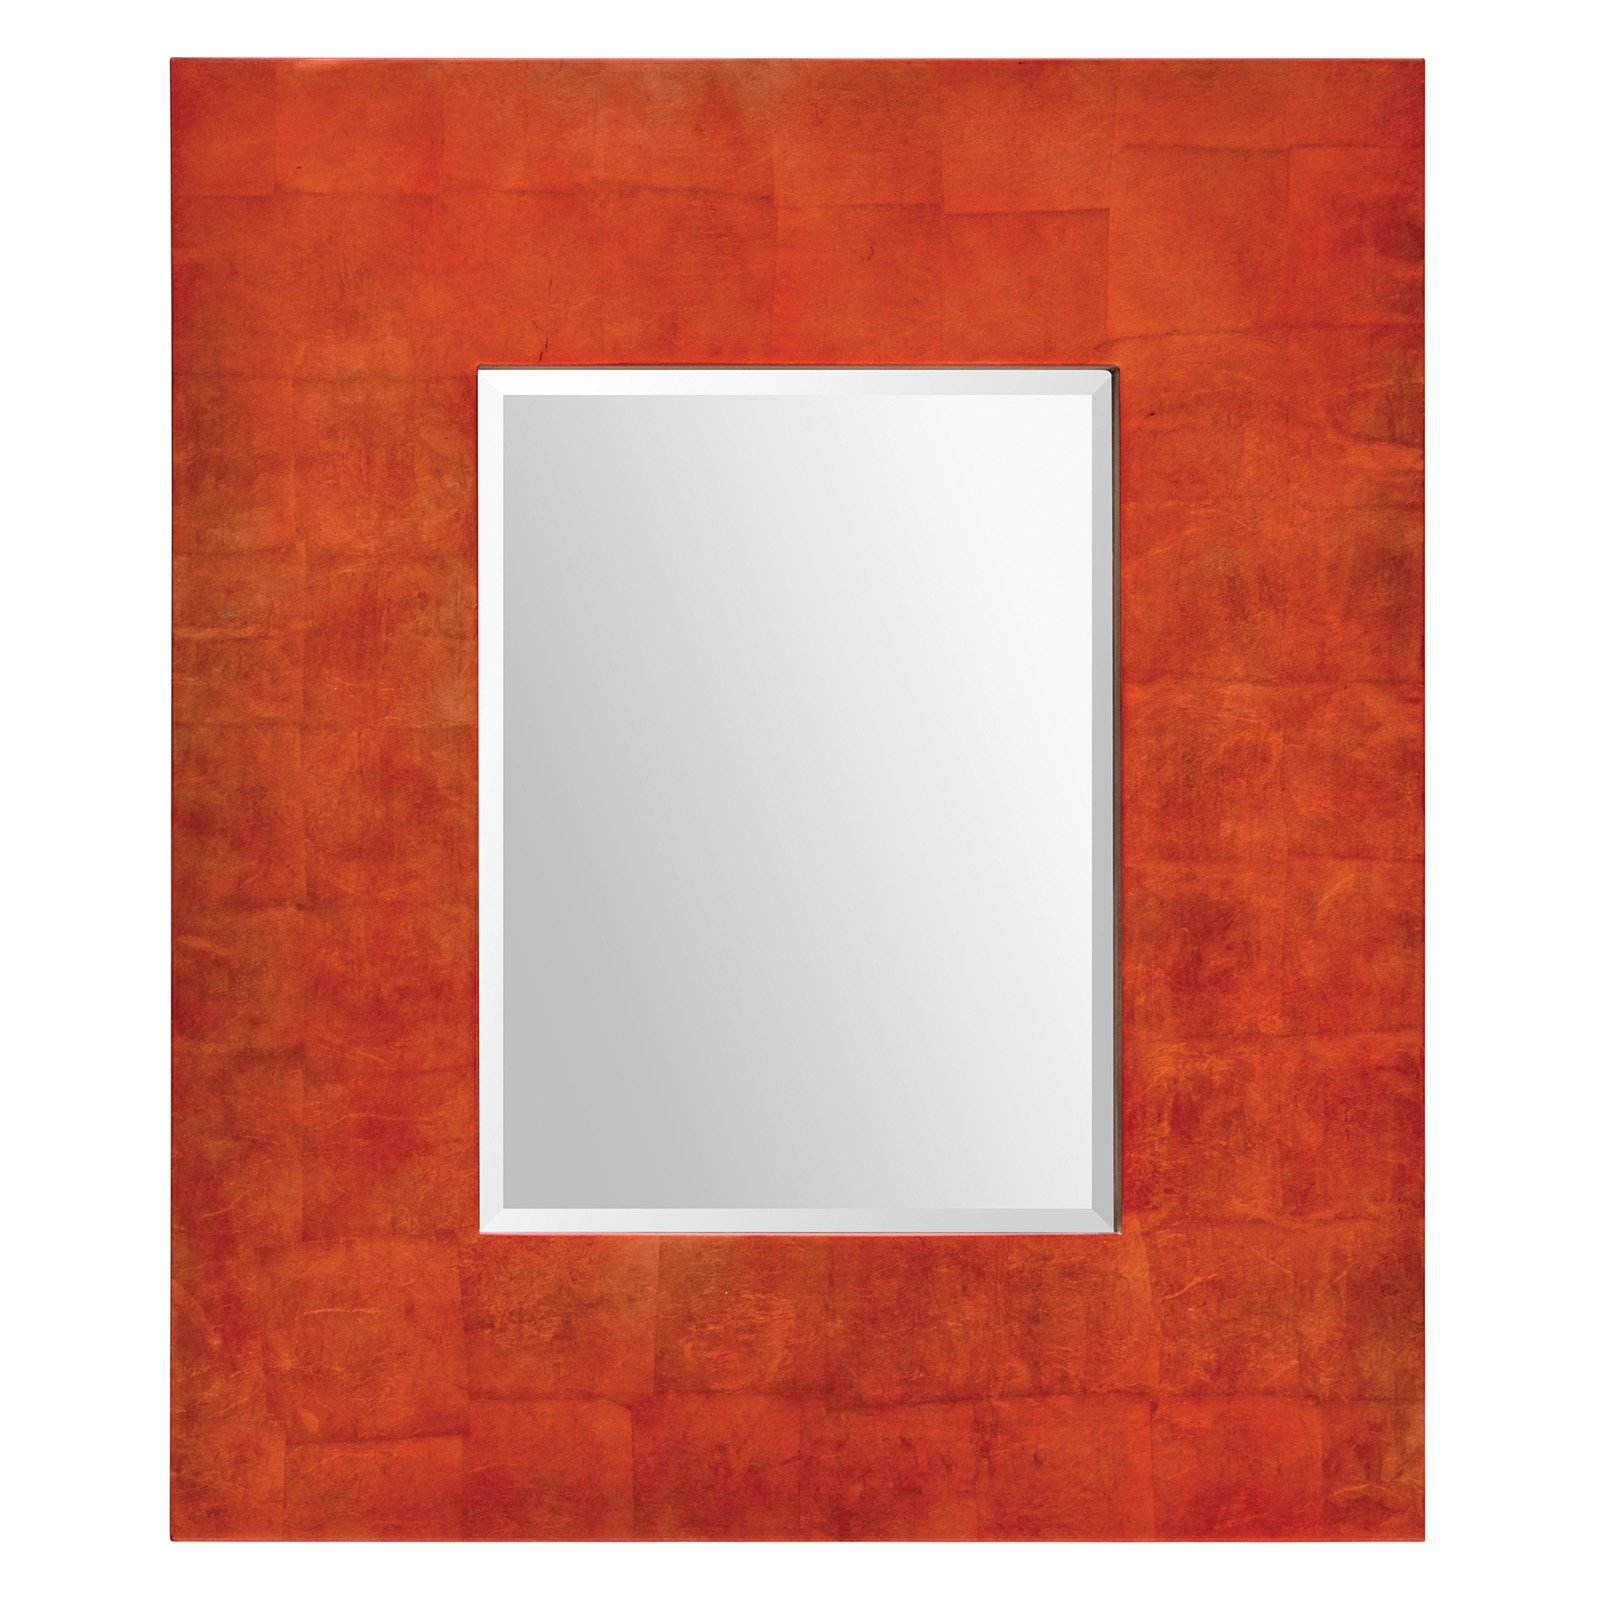 Ren-Wil Andros Wall Mirror - 34W x 40H in.